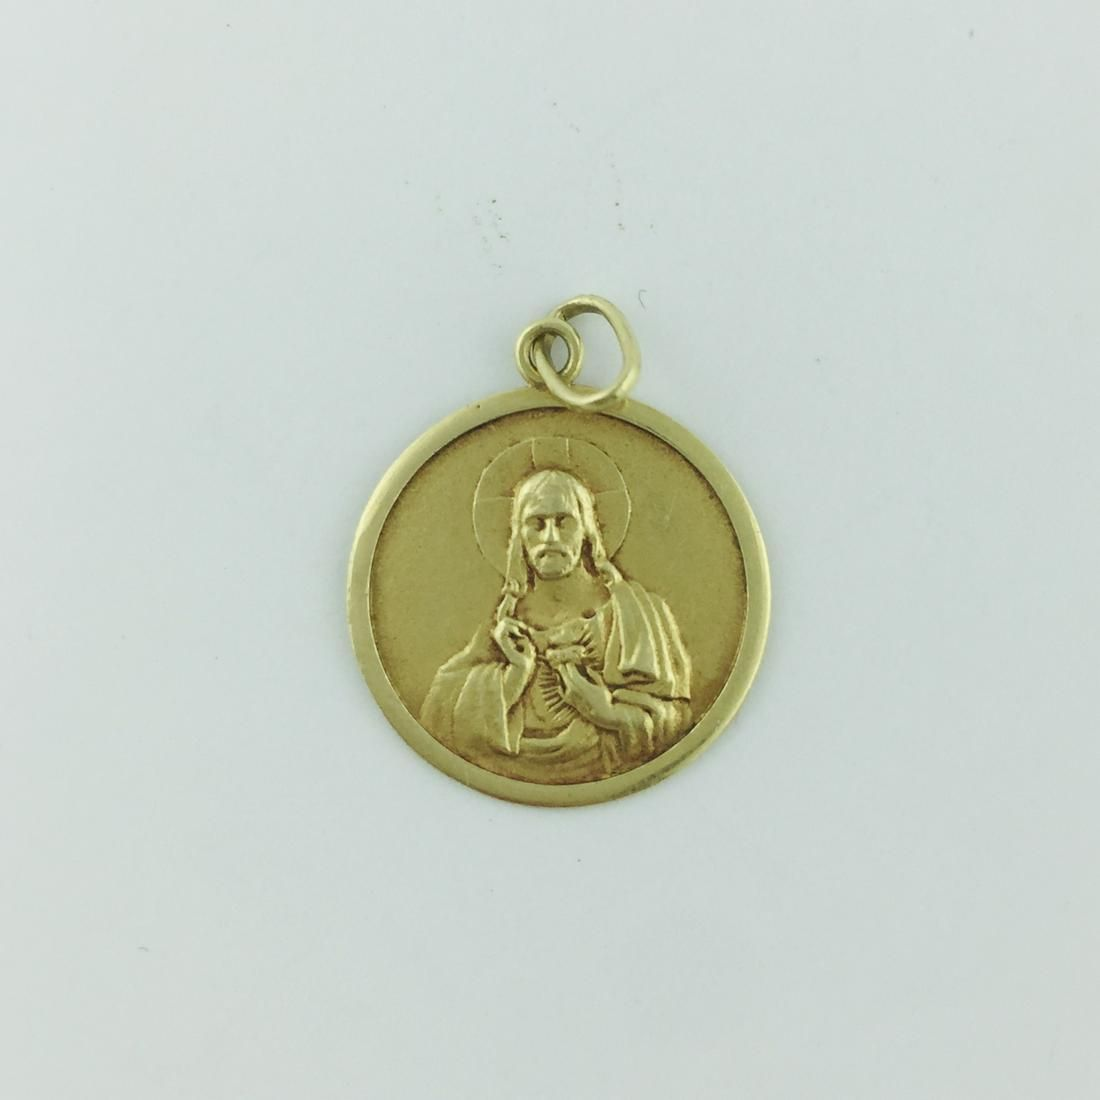 18 K yellow gold medal